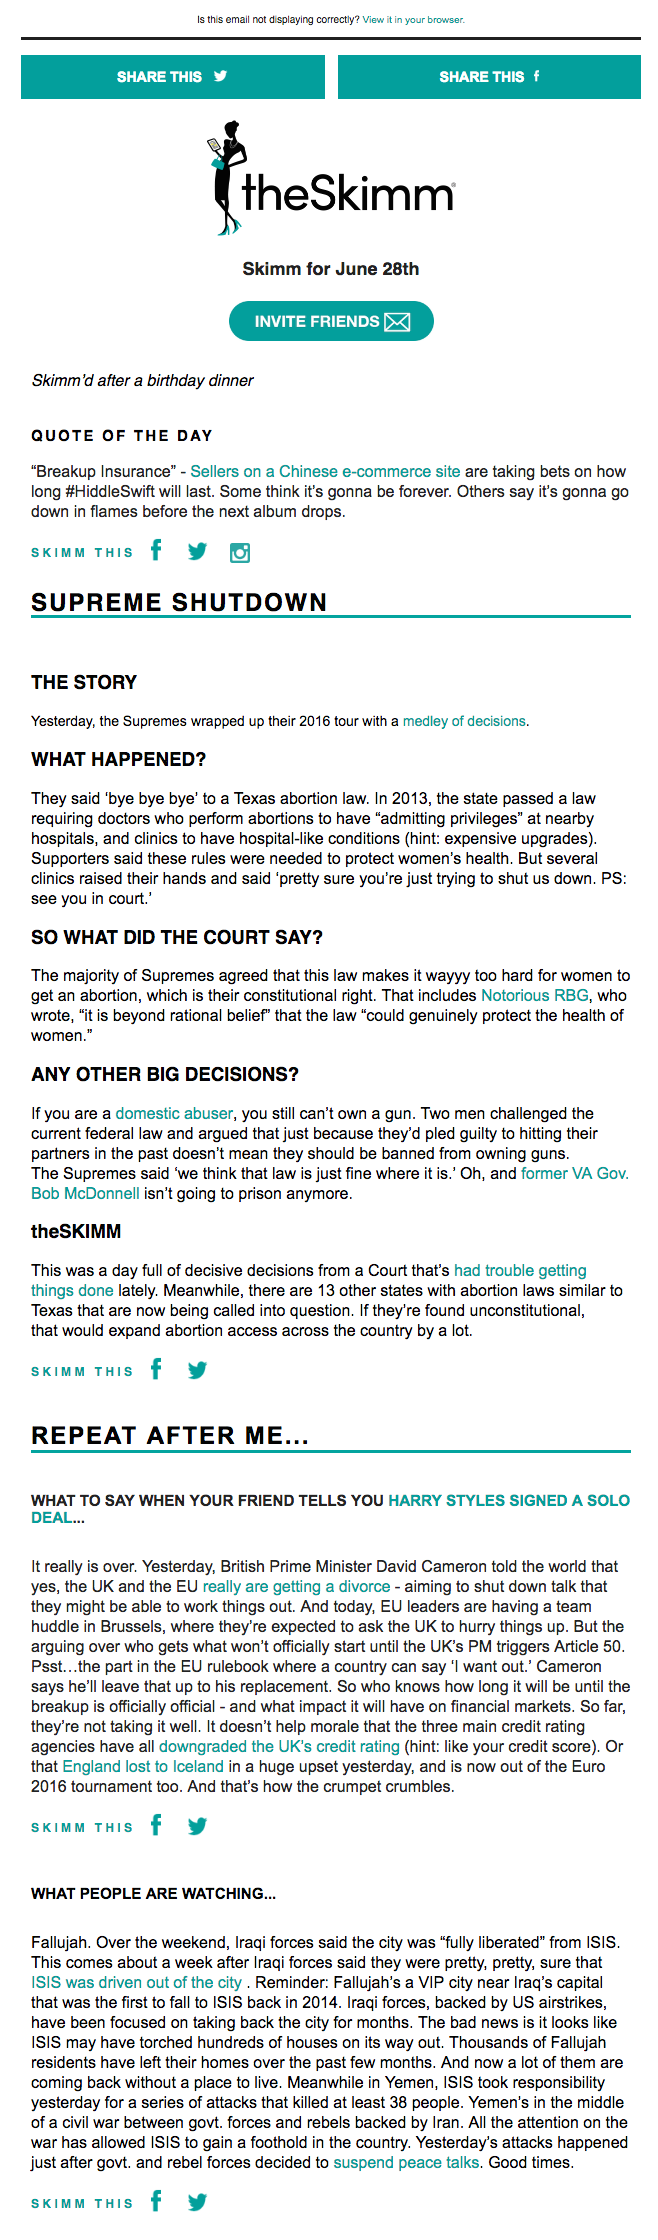 Email Newsletter Example: theSkimm